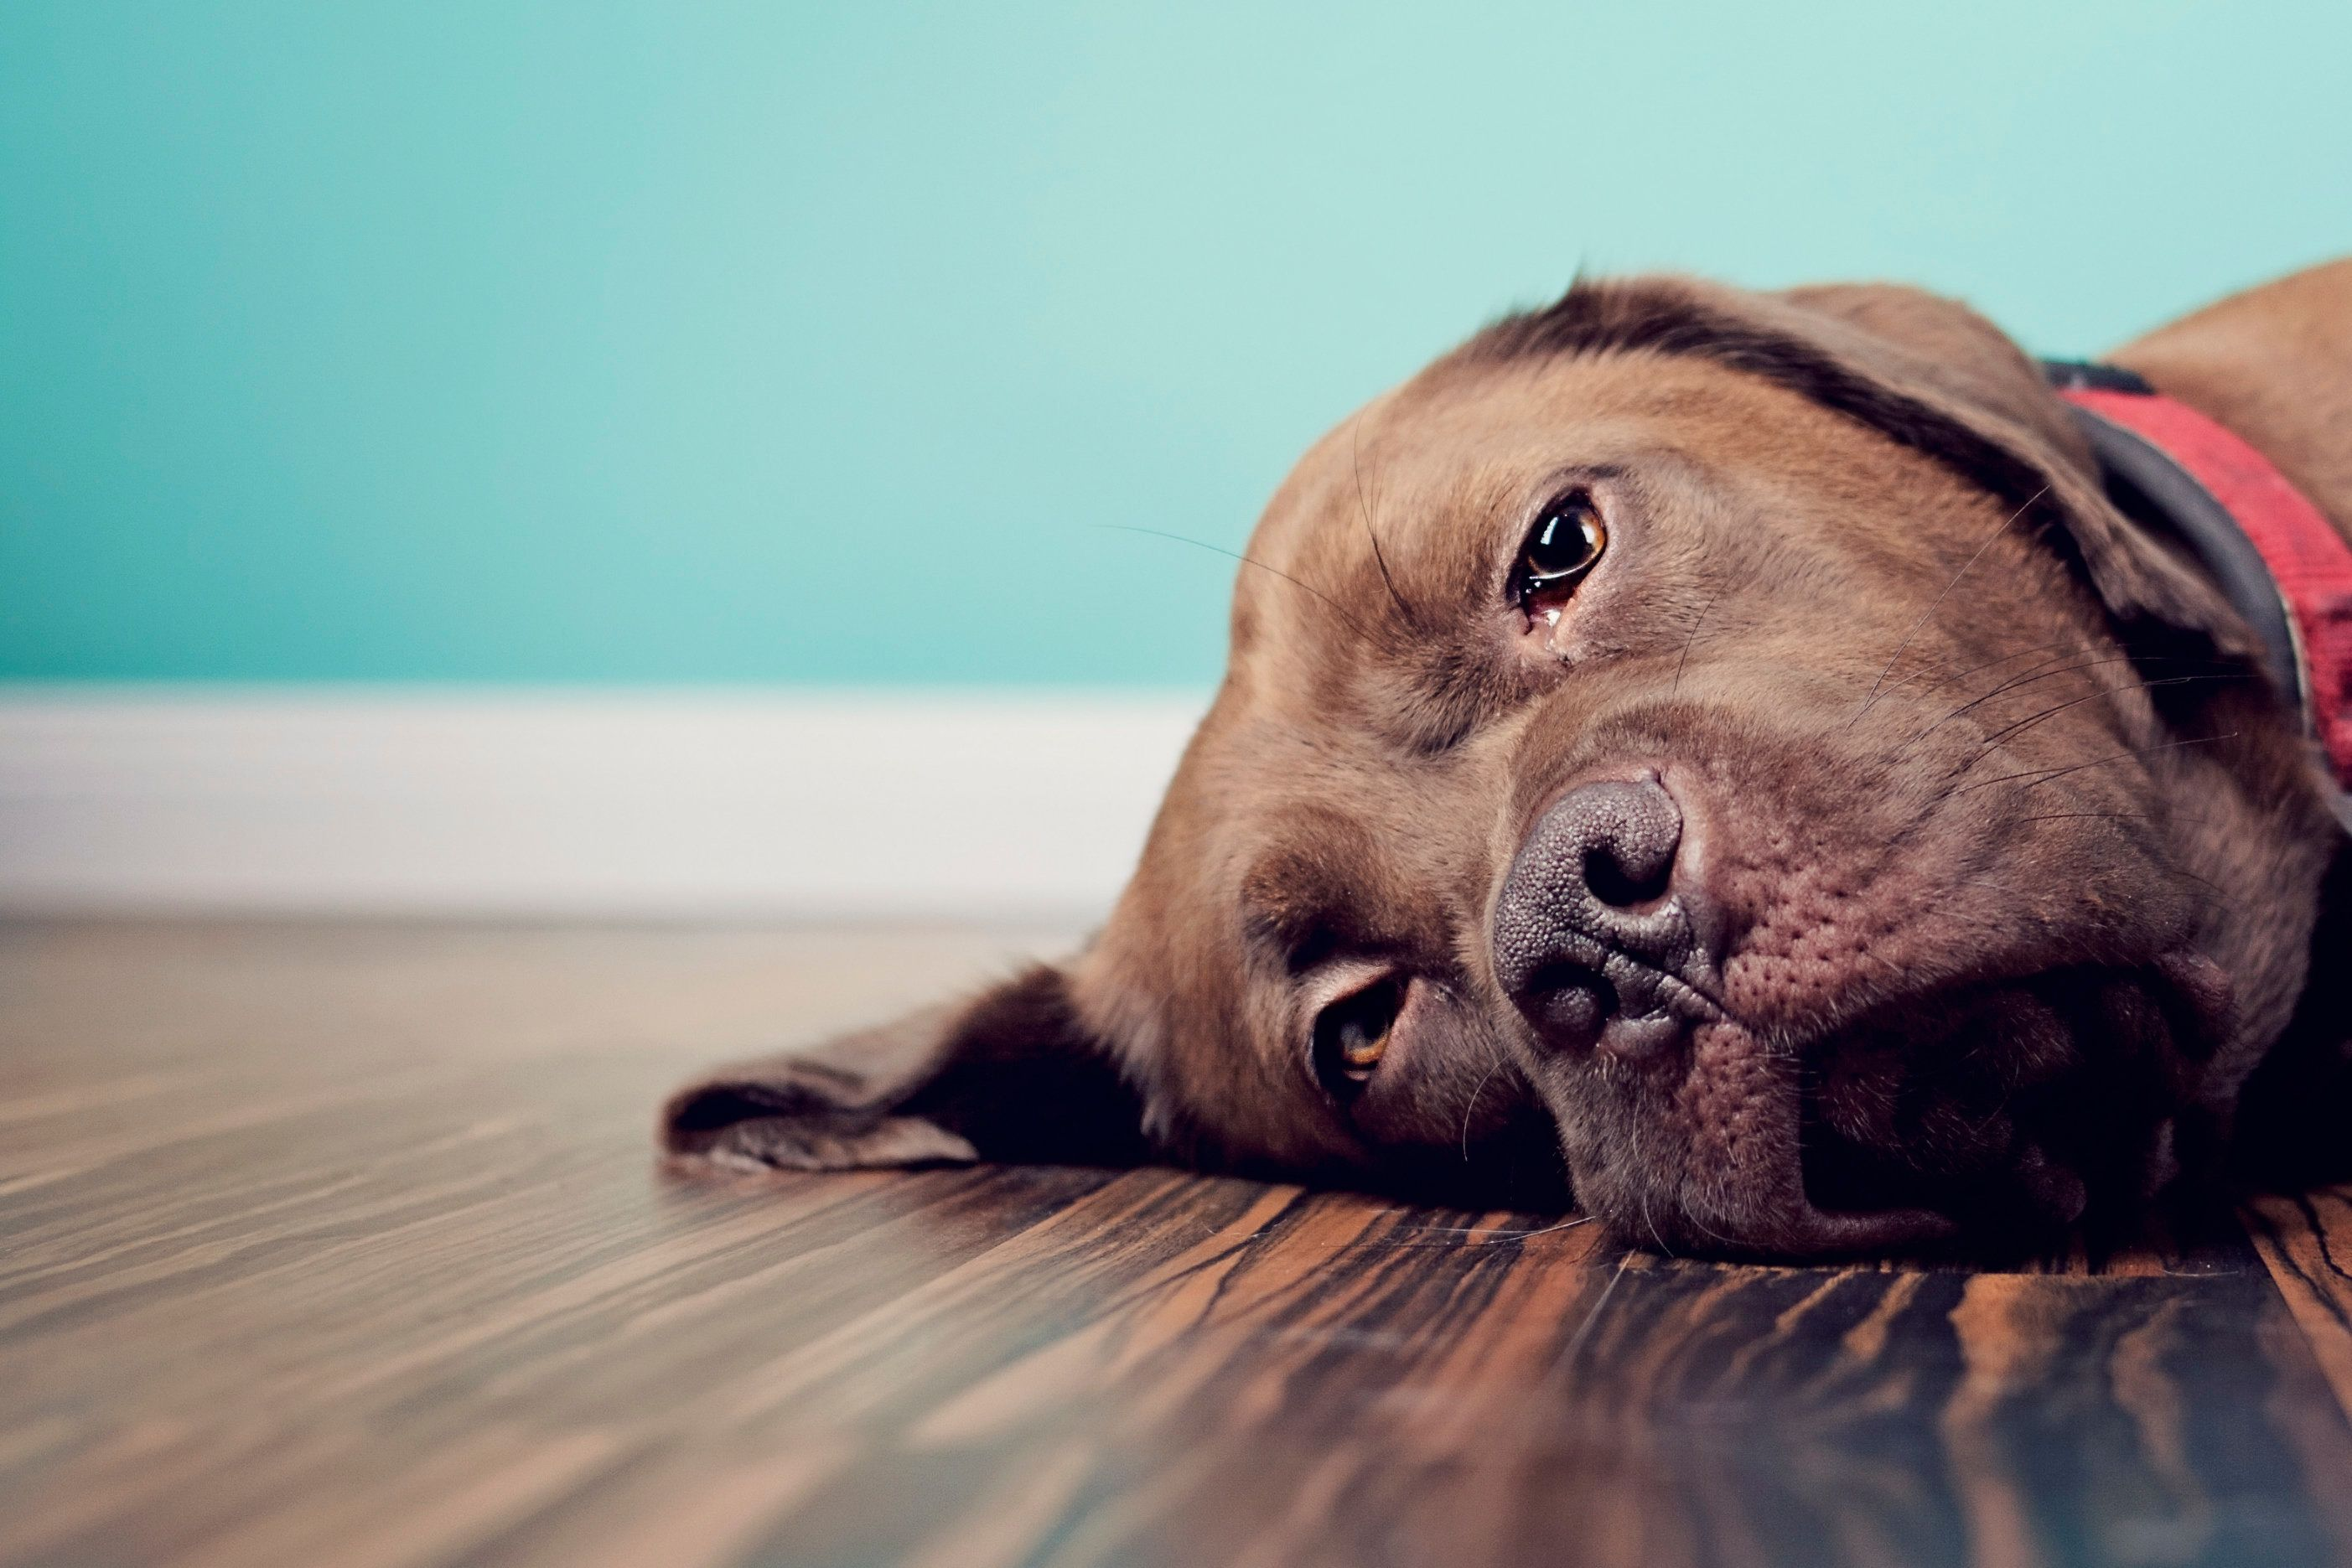 """""""Pets can grieve to varying degrees when they lose a human or animal companion,"""" said Kate Mornement, an animal b"""